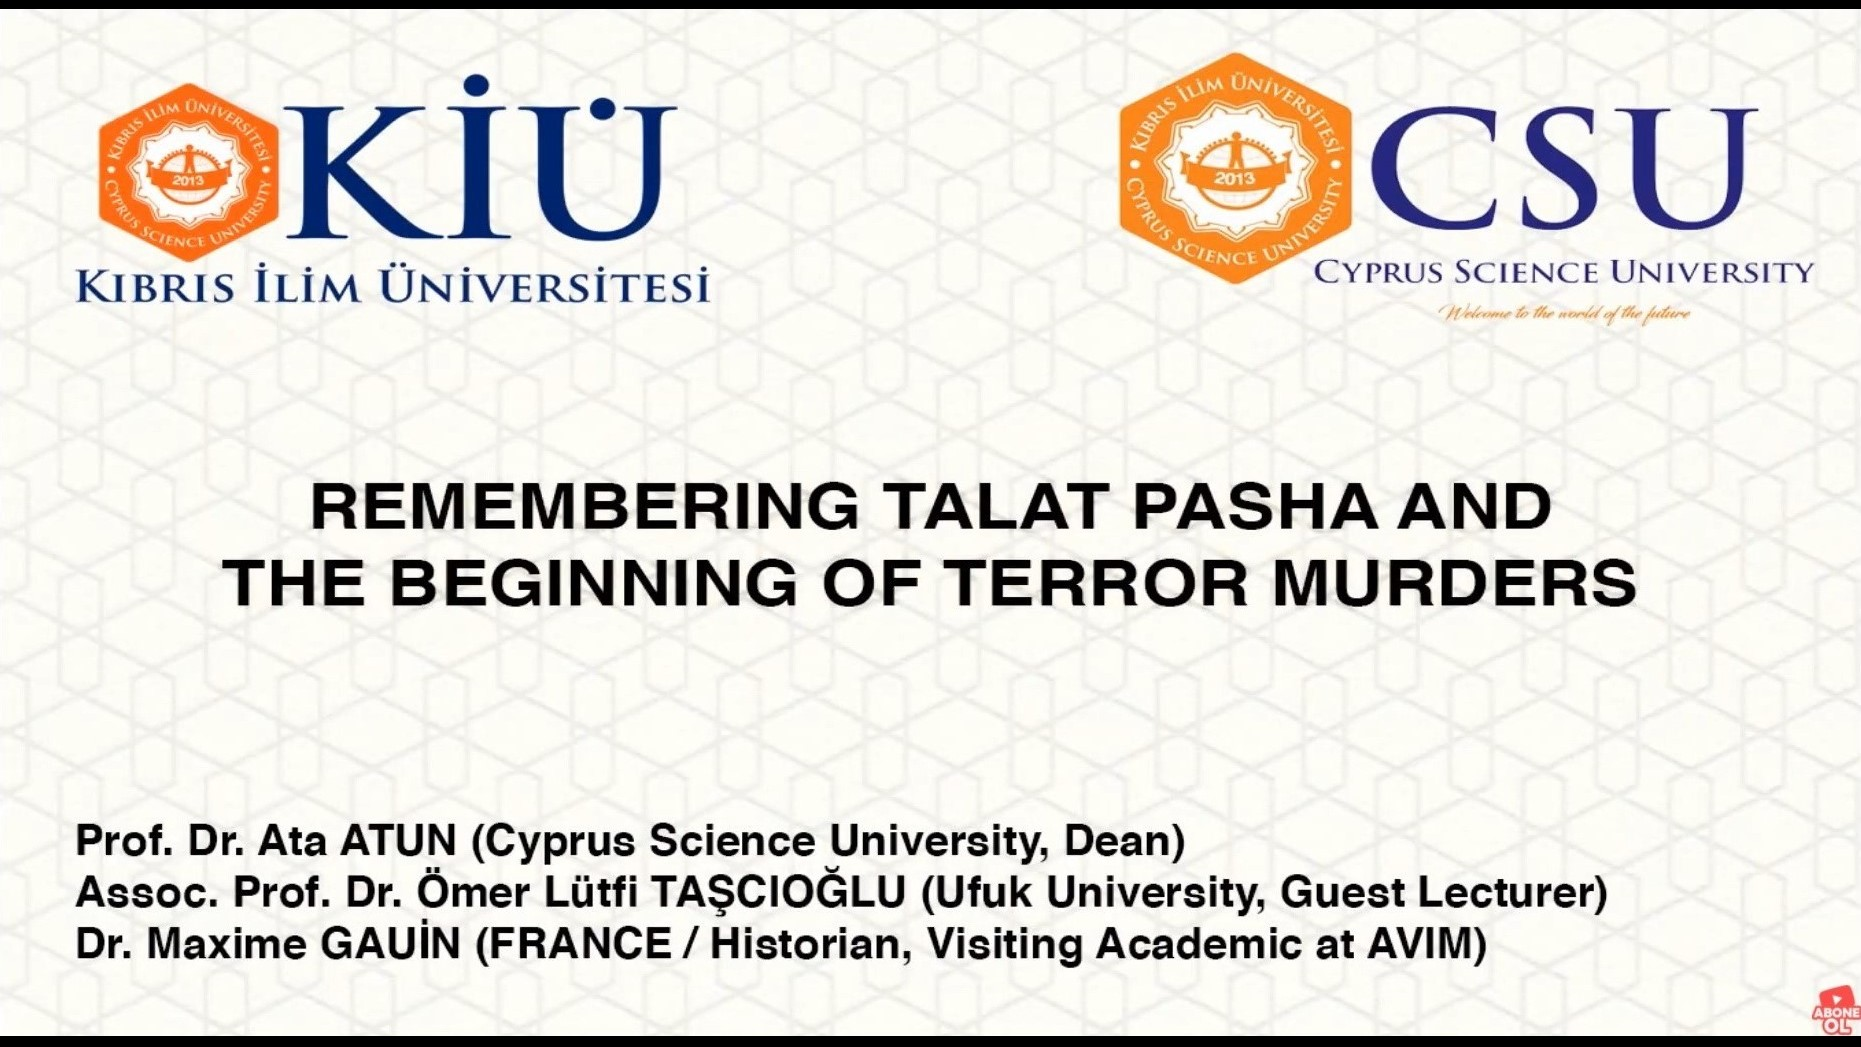 "ANNOUNCEMENT: AVİM SCHOLAR IN RESIDENCE MAXIME GAUIN PARTICIPATED IN ACADEMIC PANEL TITLED ""REMEMBERING TALAT PASHA AND THE BEGINNING OF TERROR MURDERS"""